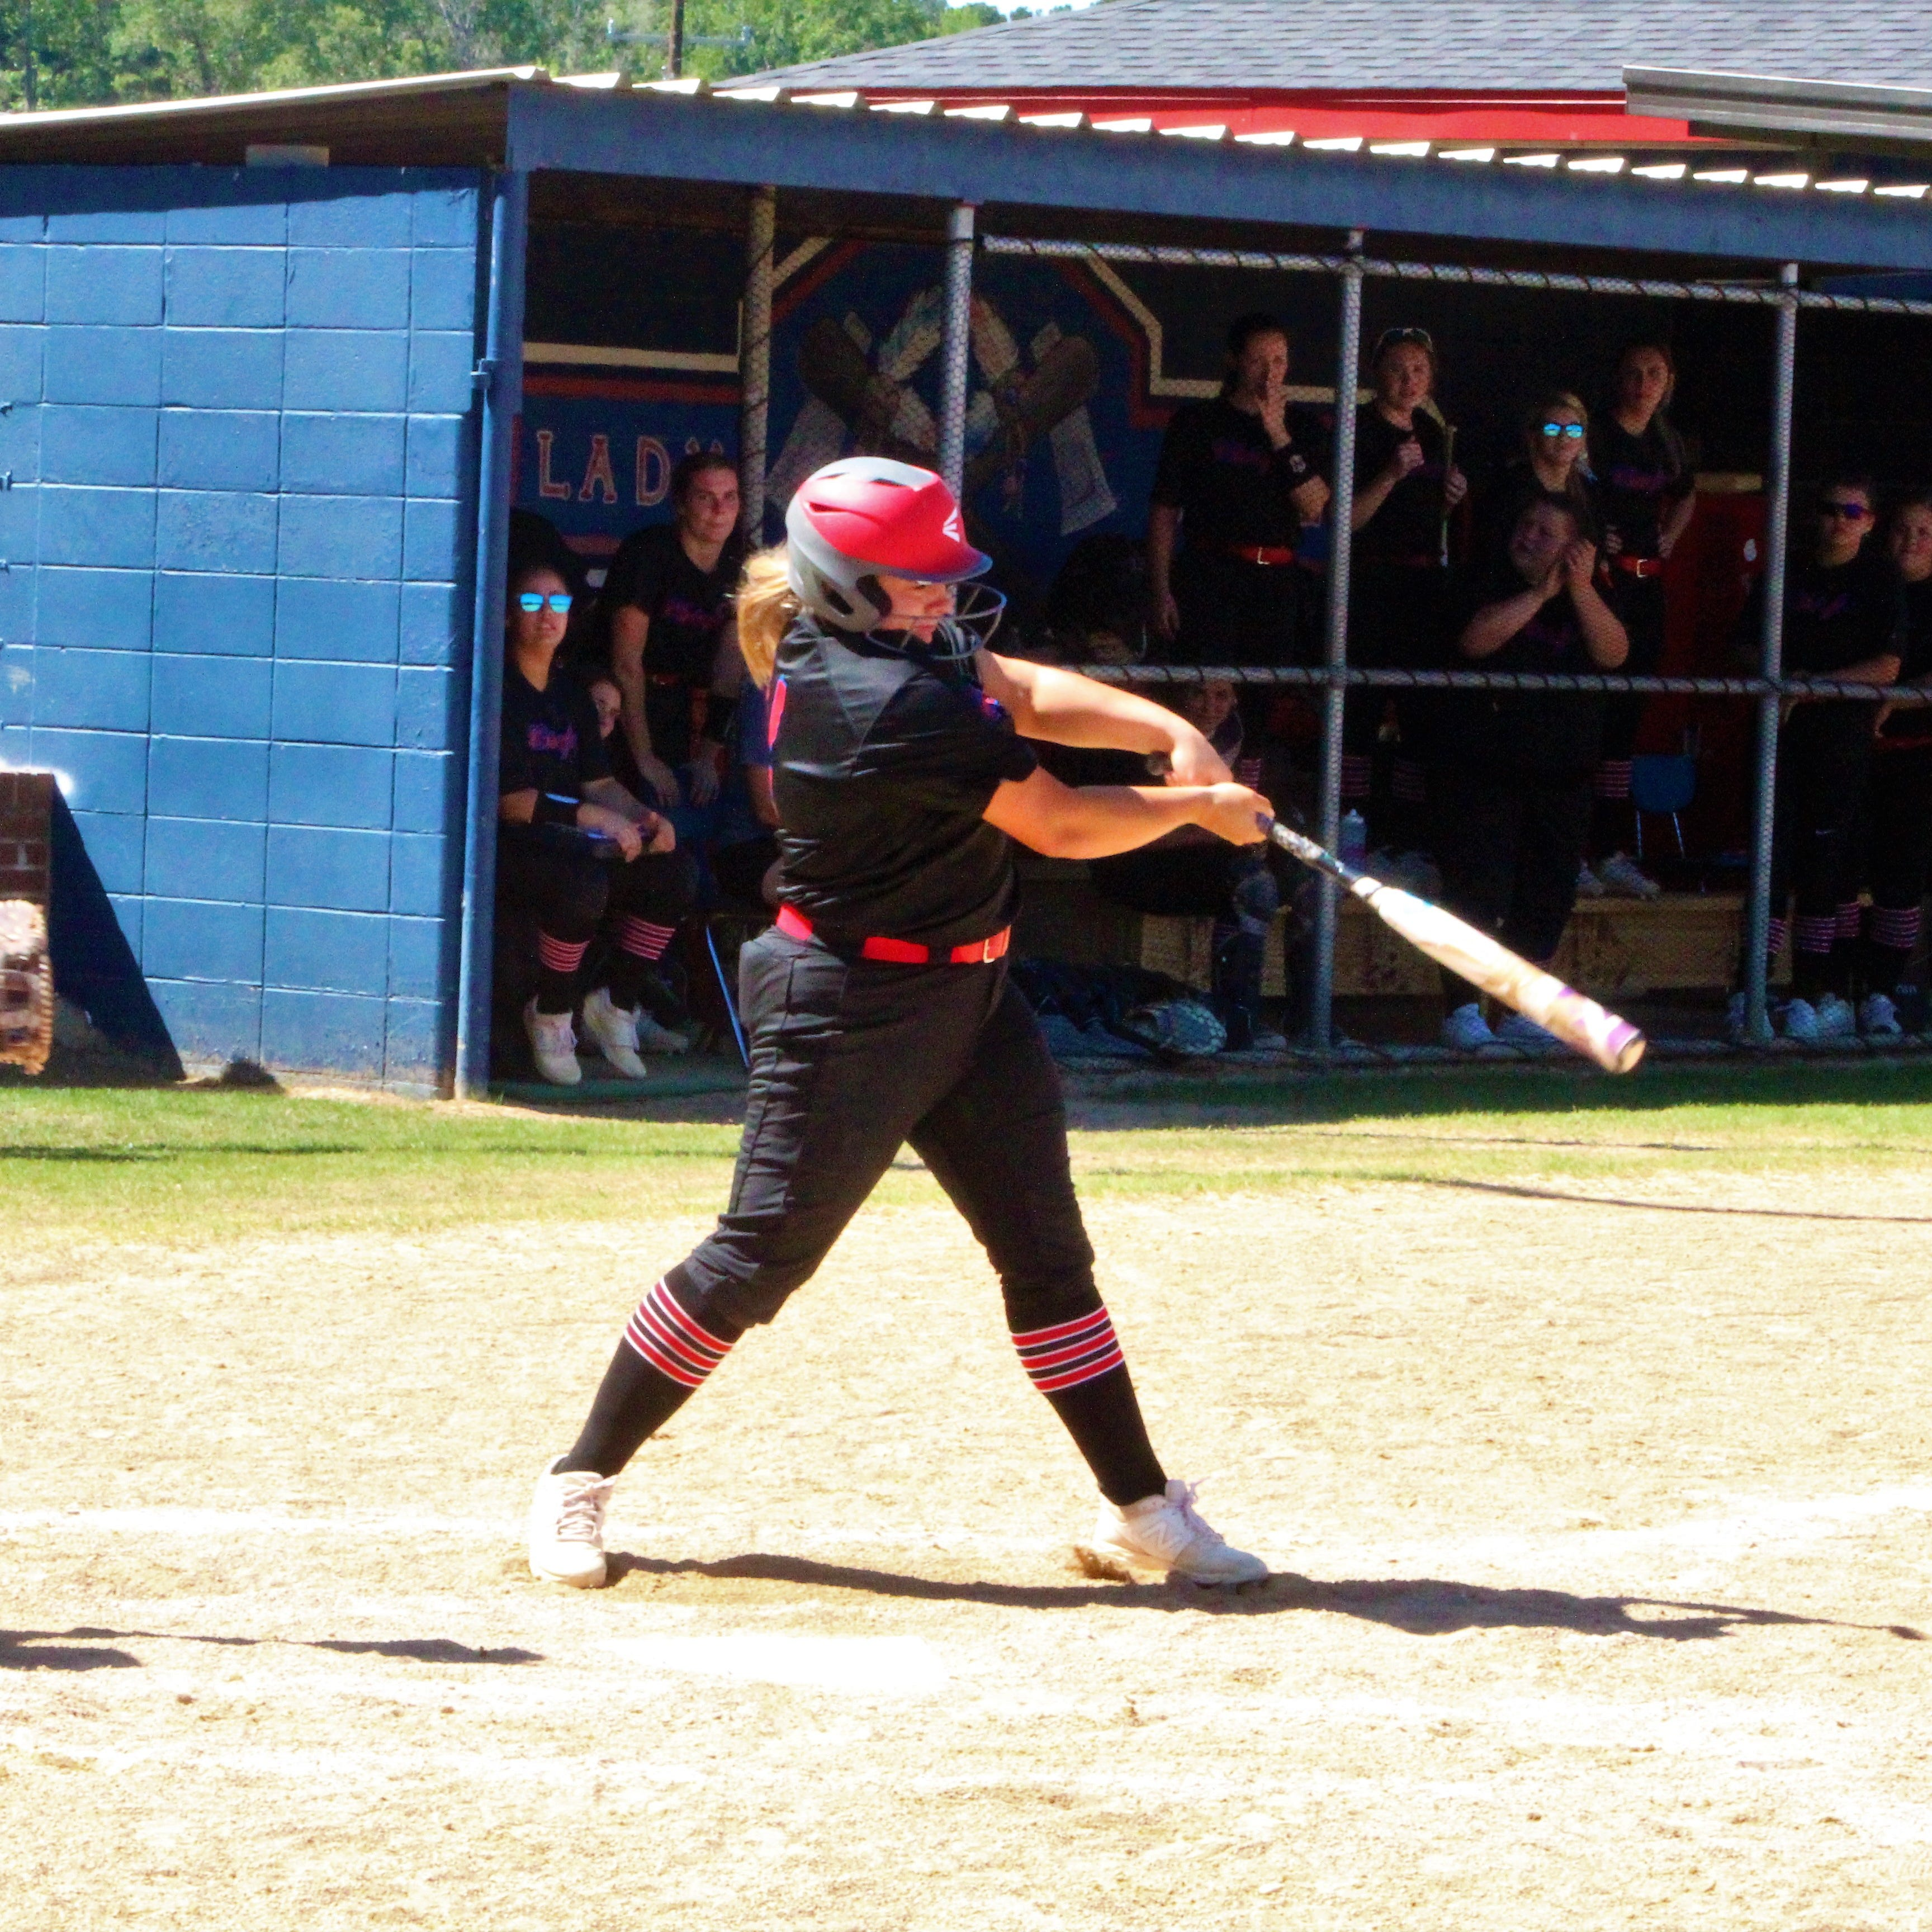 West Ouachita third baseman Joyce Currie (14) hits a solo homerun in the bottom of sixth inning to give the Lady Chiefs a 6-0 lead over the DeRidder Lady Dragons in the Class 4A quarterfinal playoffs at West Ouachita's Reservation on Saturday afternoon.